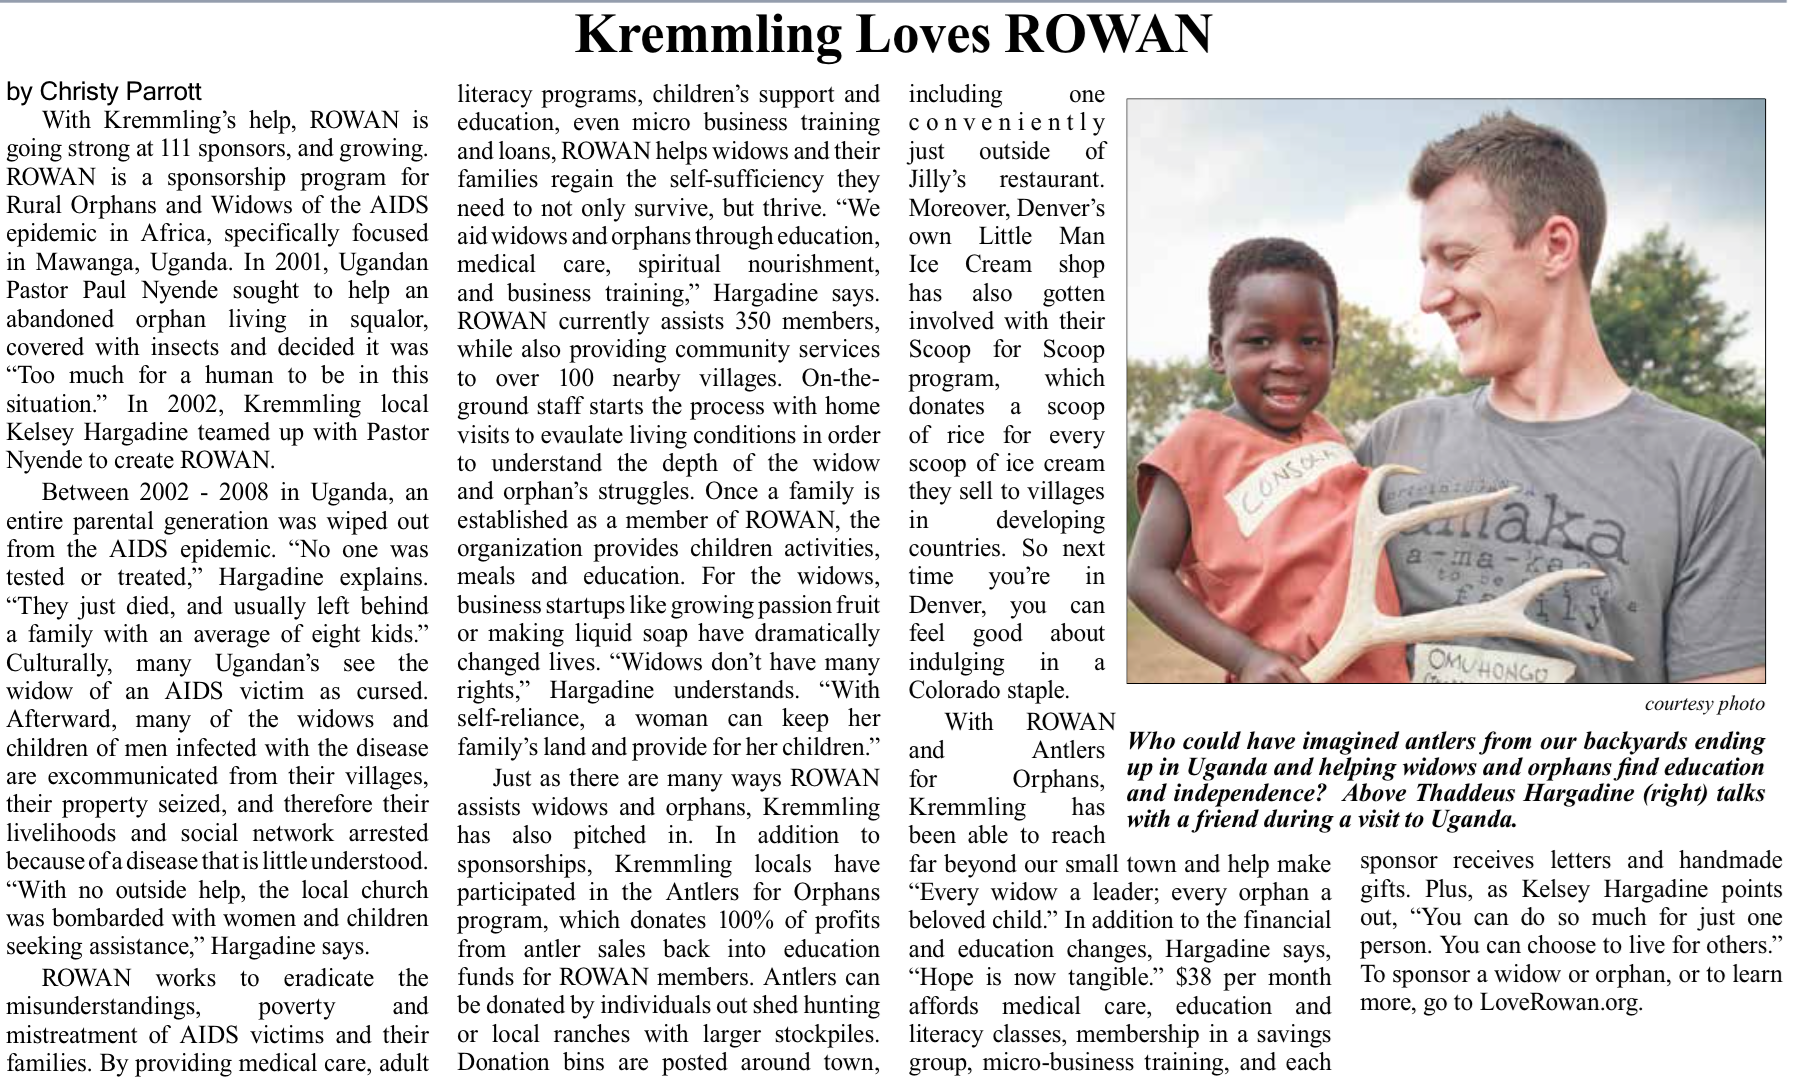 ROWAN newspaper clipping